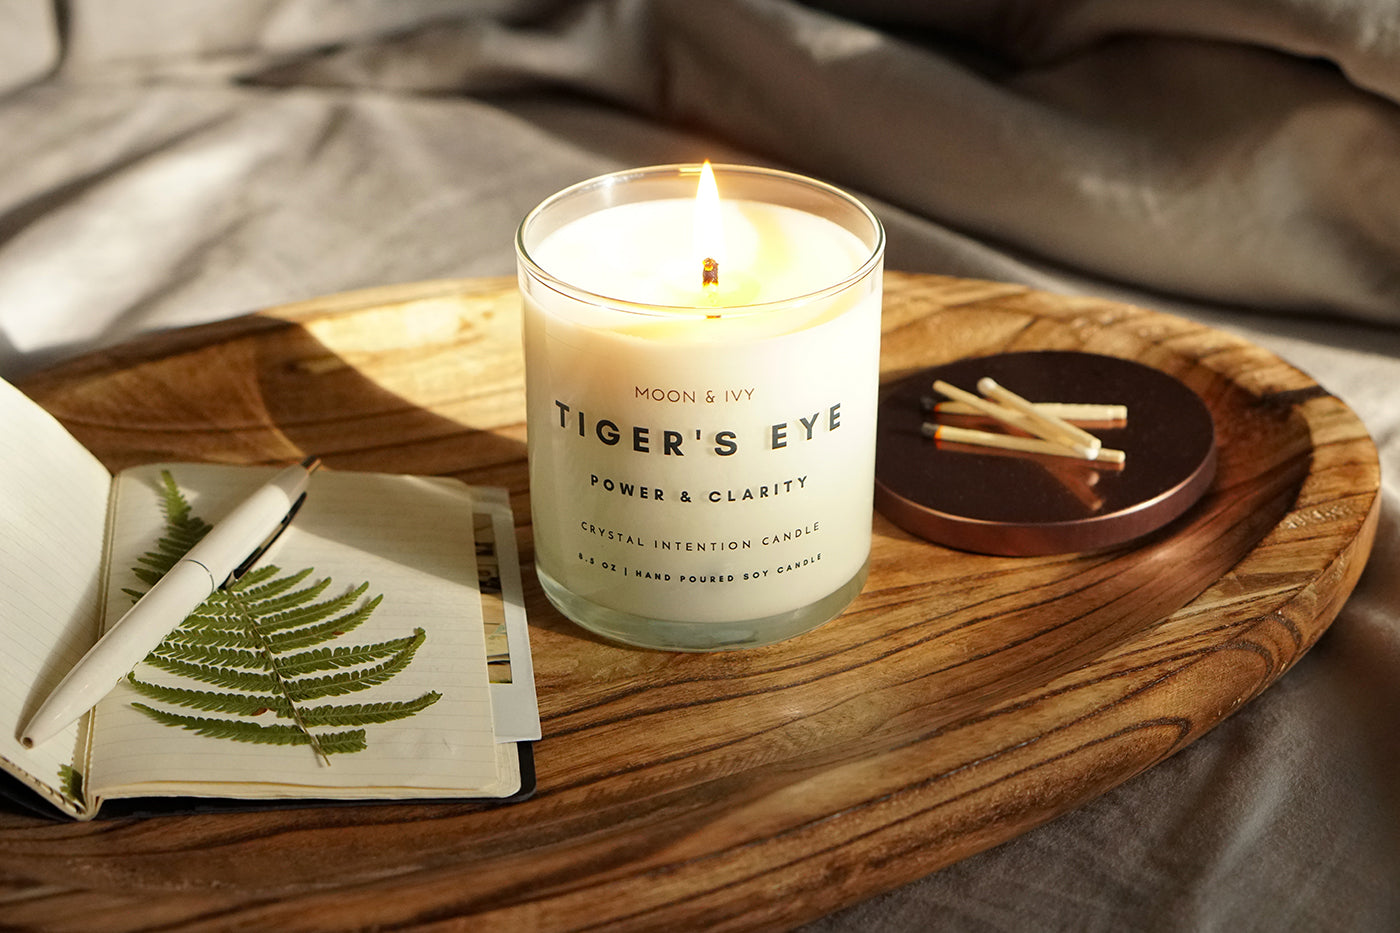 Moon & Ivy Tigers Eye Fall Candles